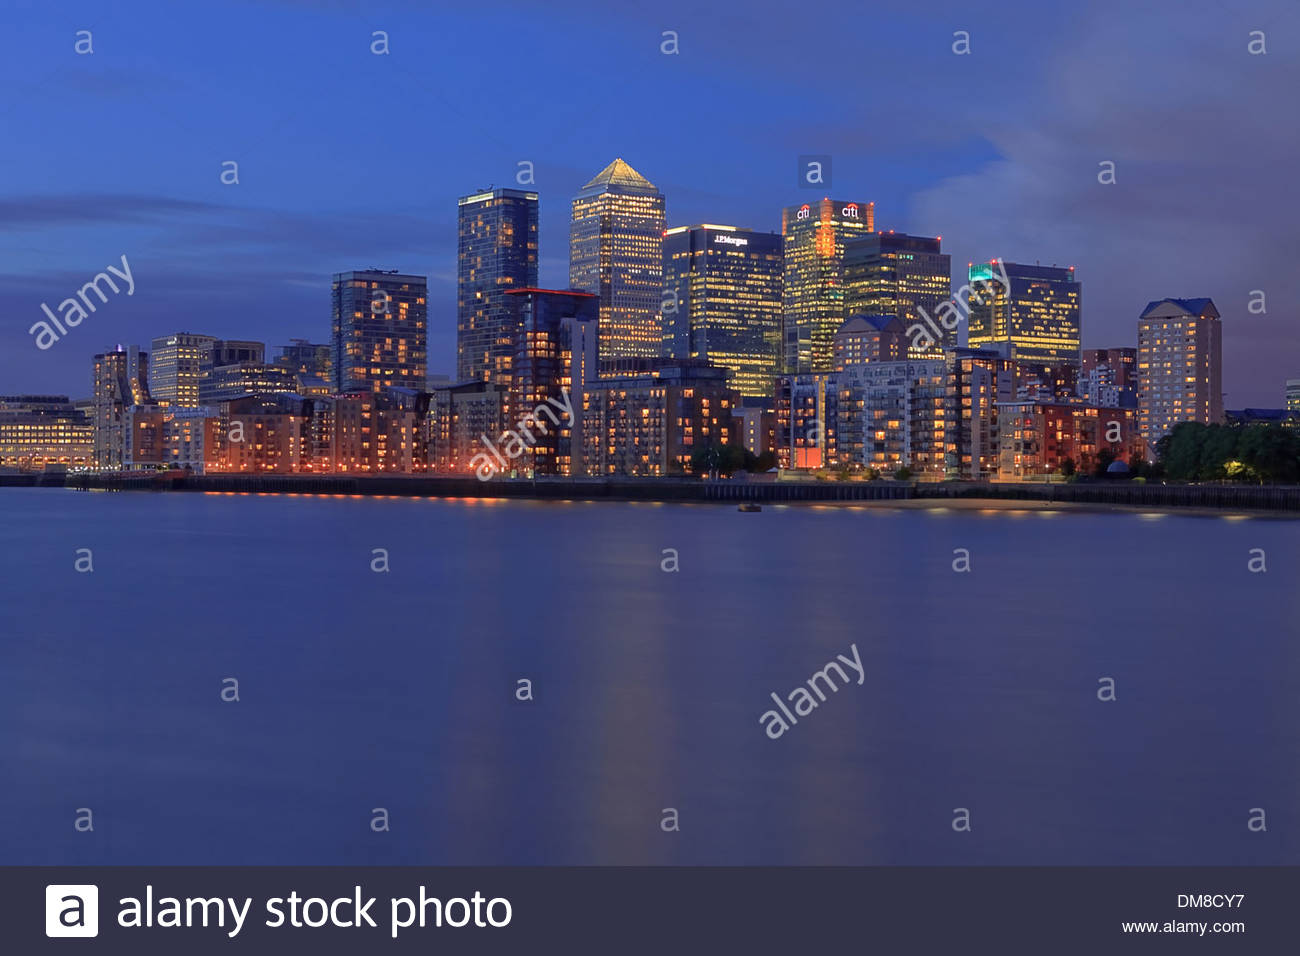 Canary Wharf , on the Isle of Dogs, at twilight as seen from Deptford south London. Canary Wharf tower dominates the area - Stock Image